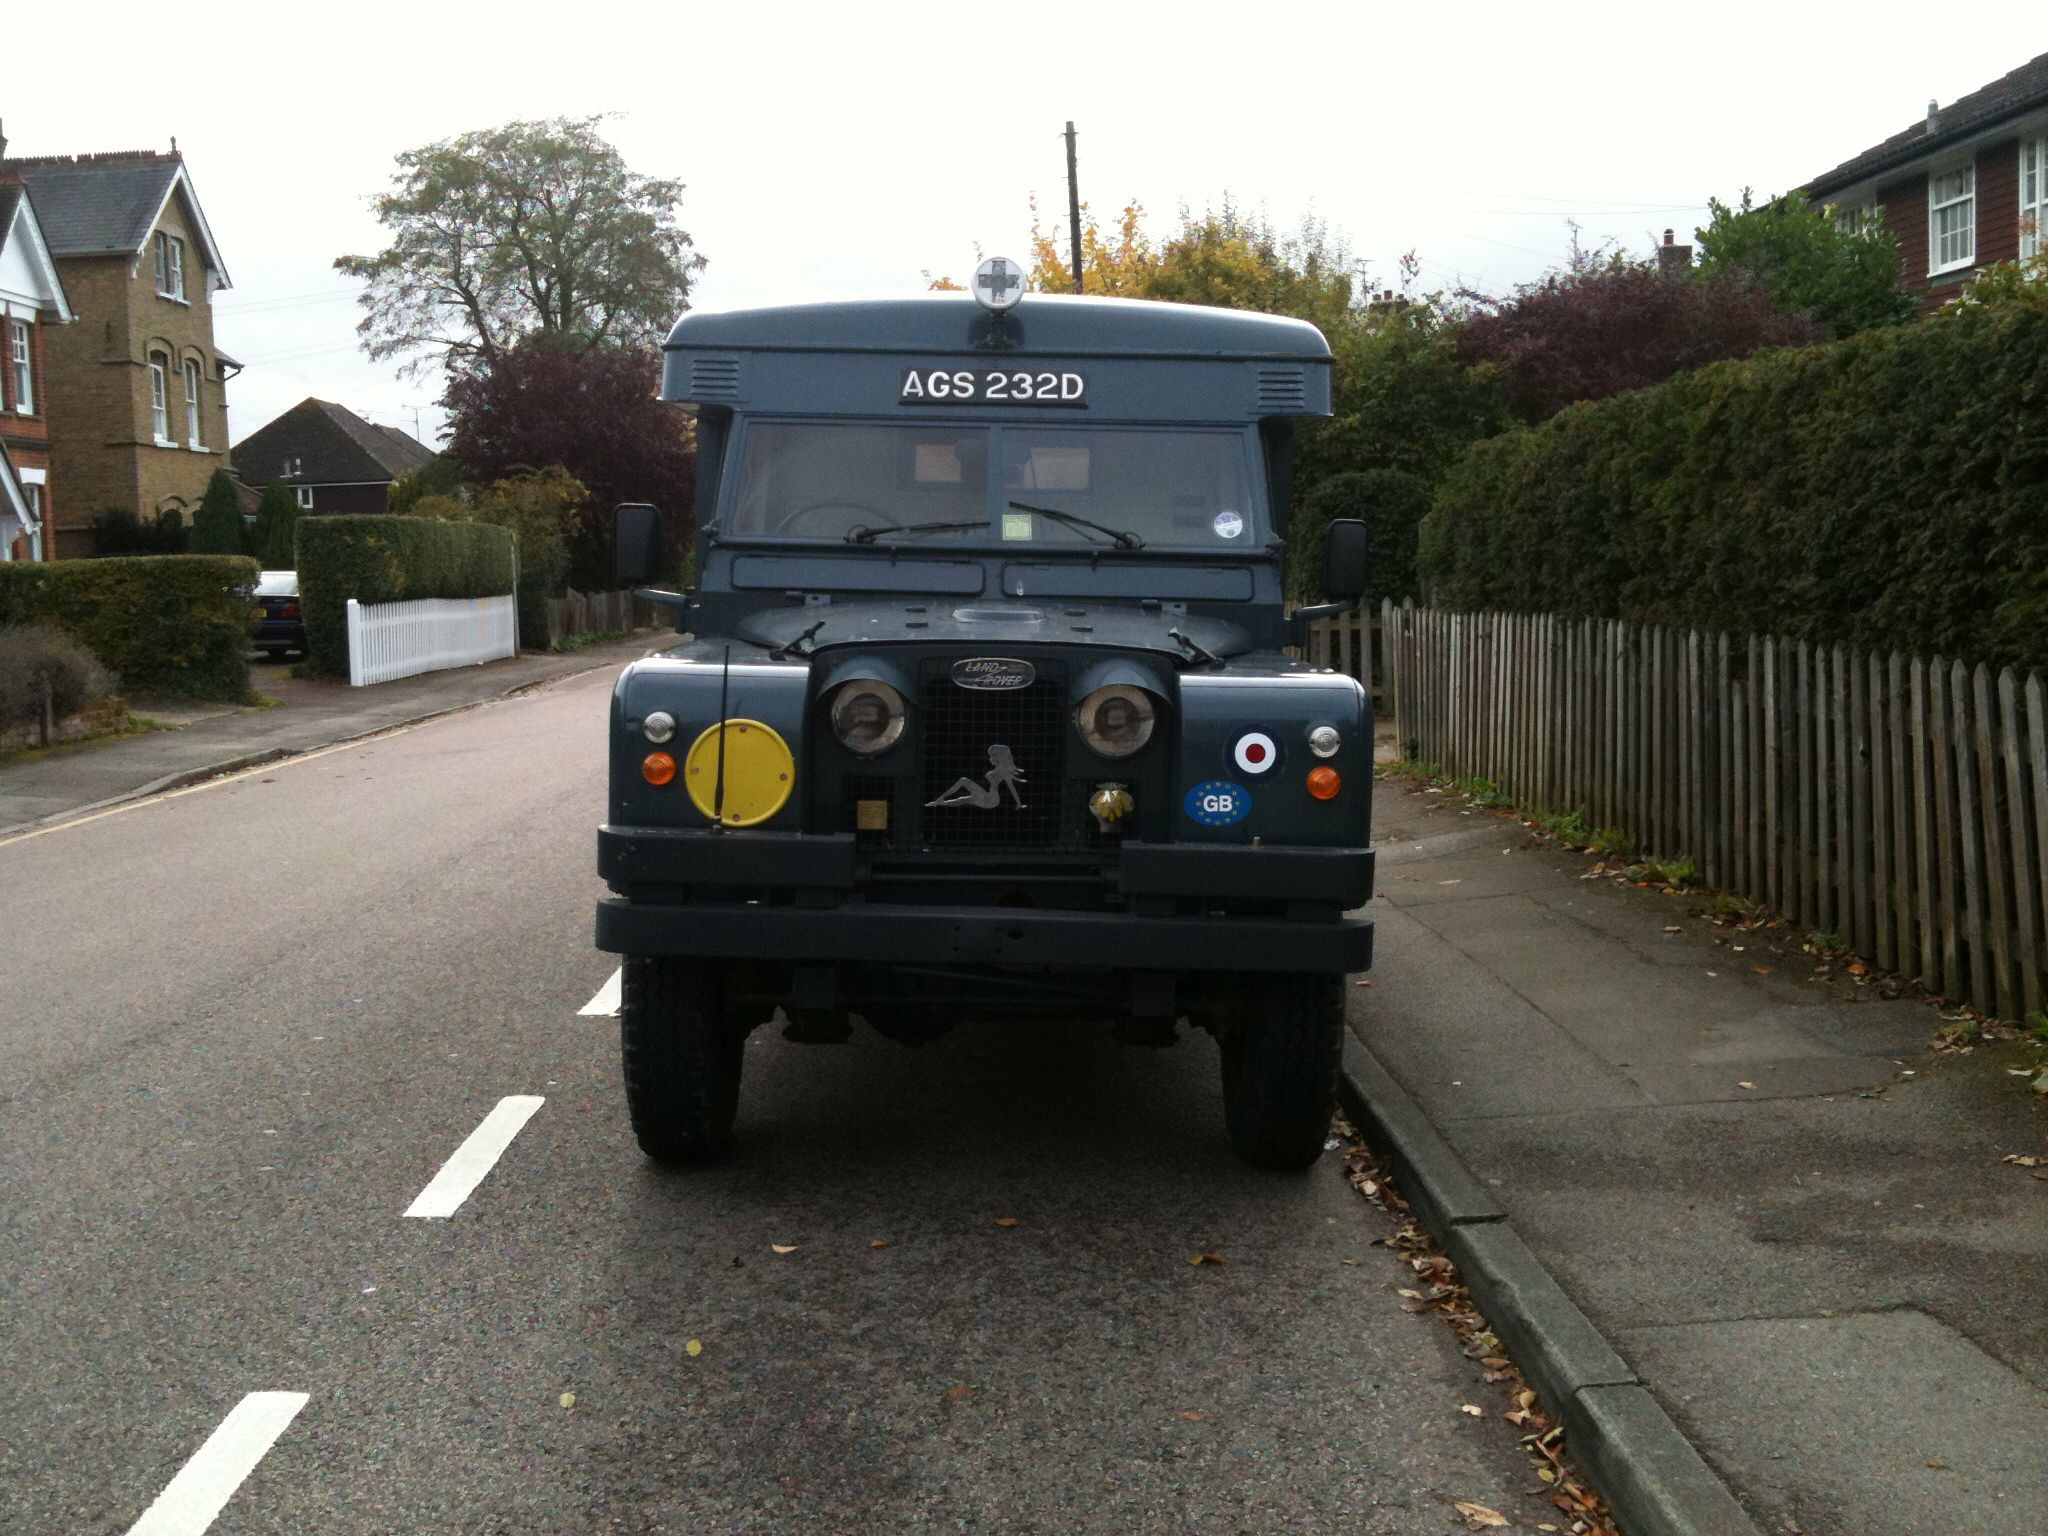 1966 Series 2 Land Rover Ambulance. 'Agnes' Oh I miss her:(